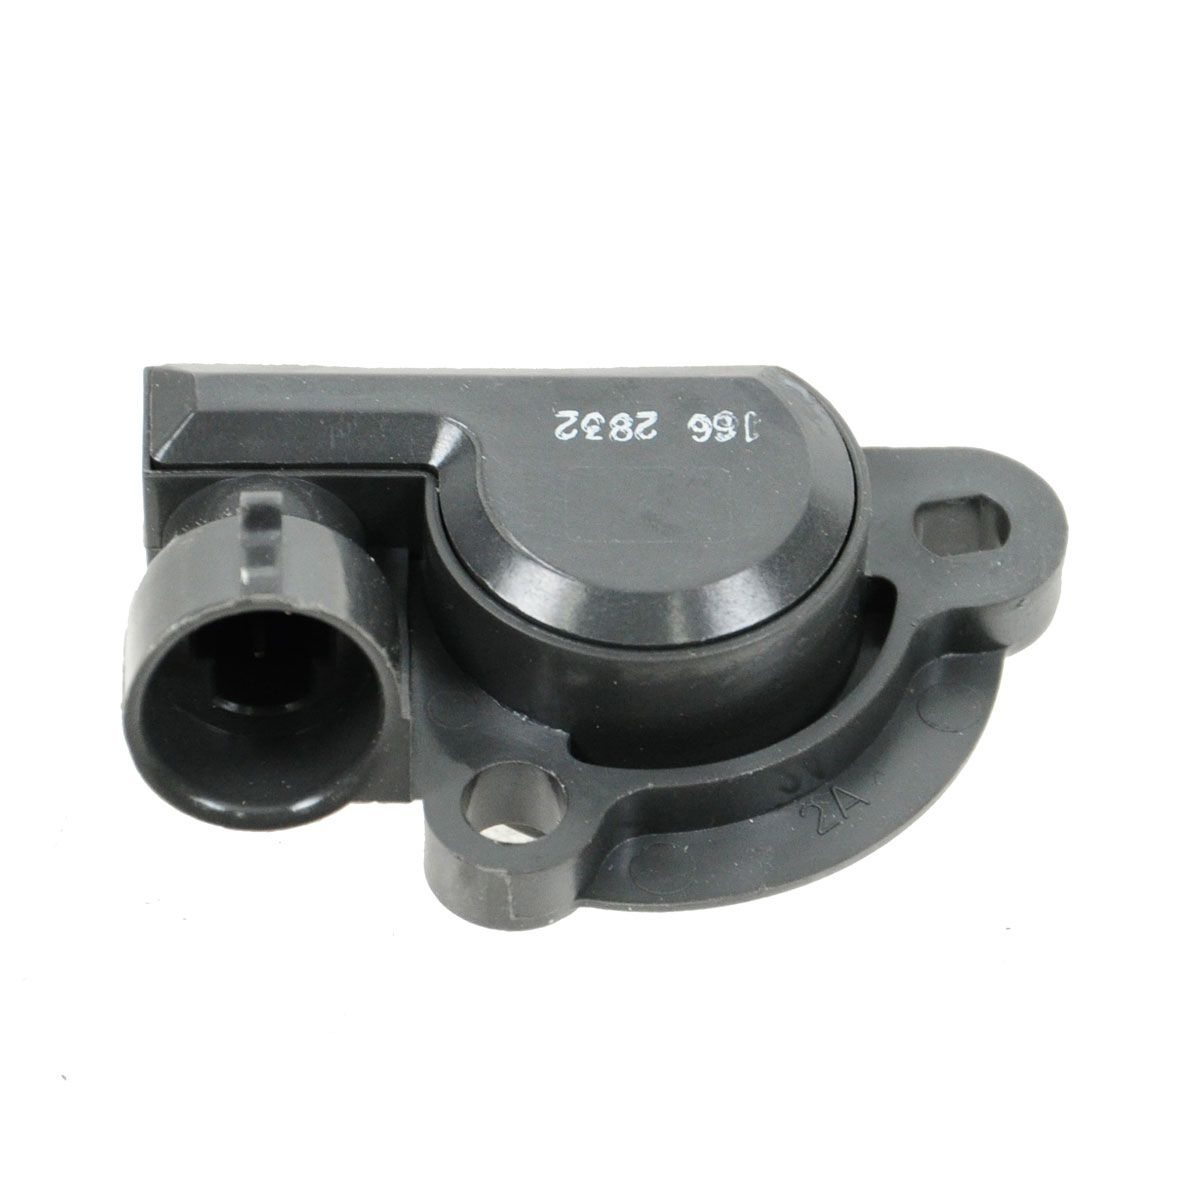 Details about TPS Throttle Position Sensor For Chevy GMC C/K Pickup Truck  Van Olds Pontiac